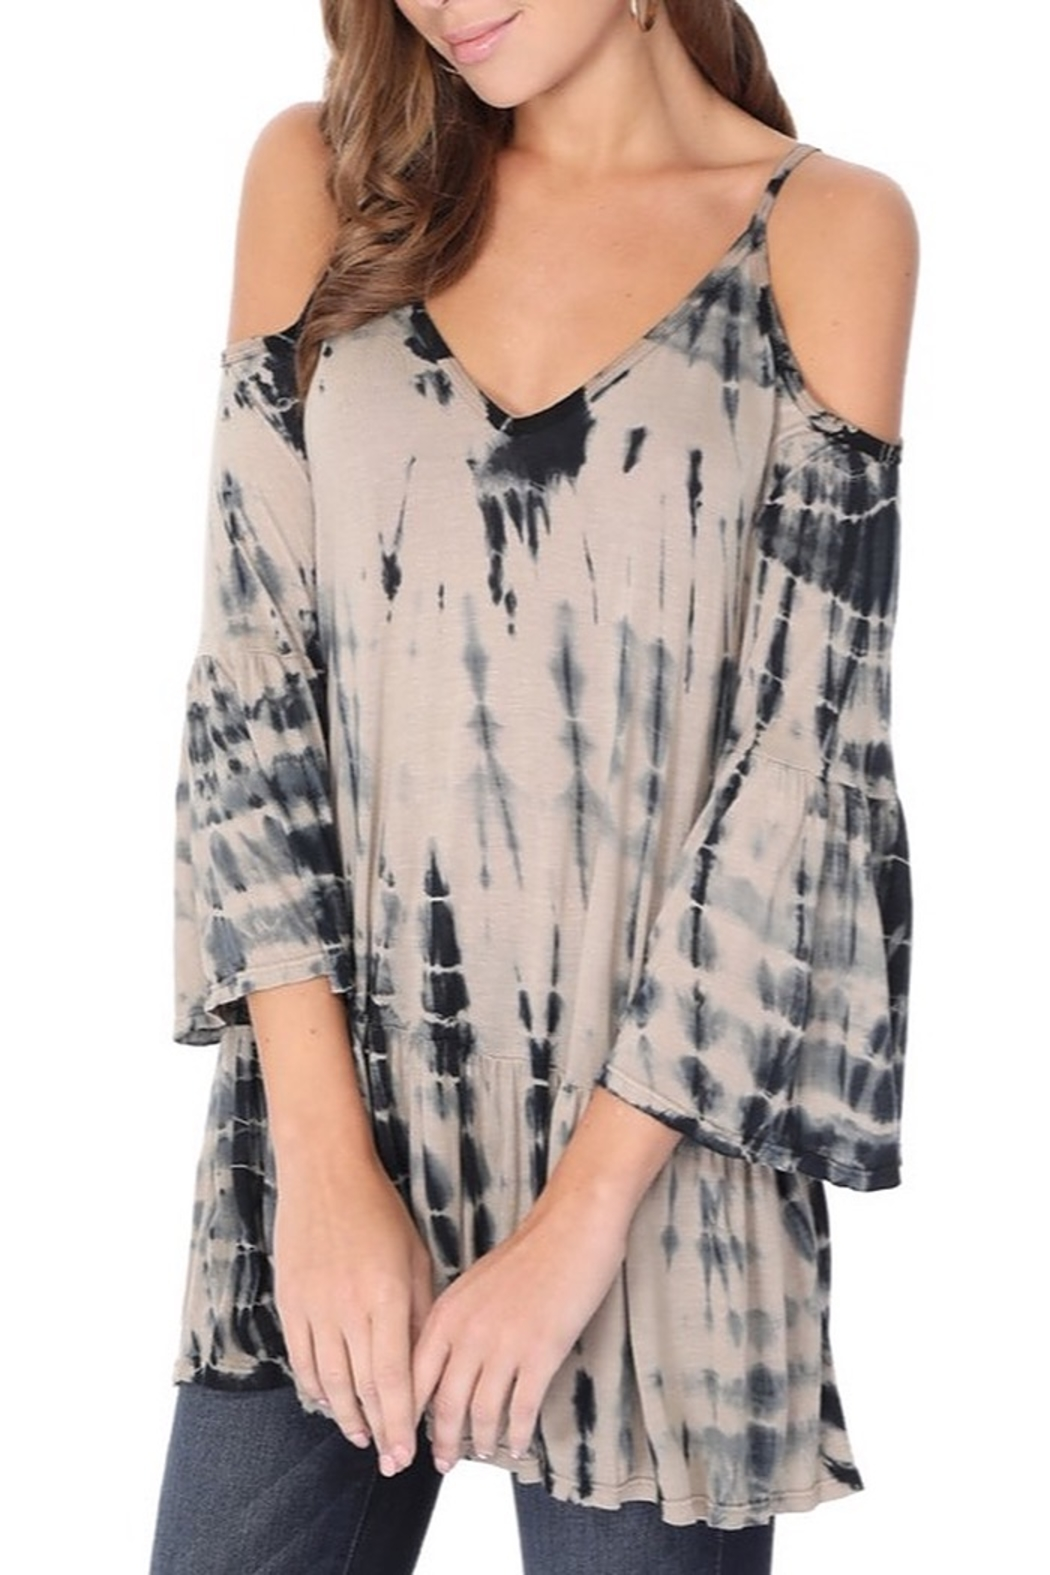 Tparty Bamboo Tie Dye Flowy Cold Shoulder Top - Front Full Image